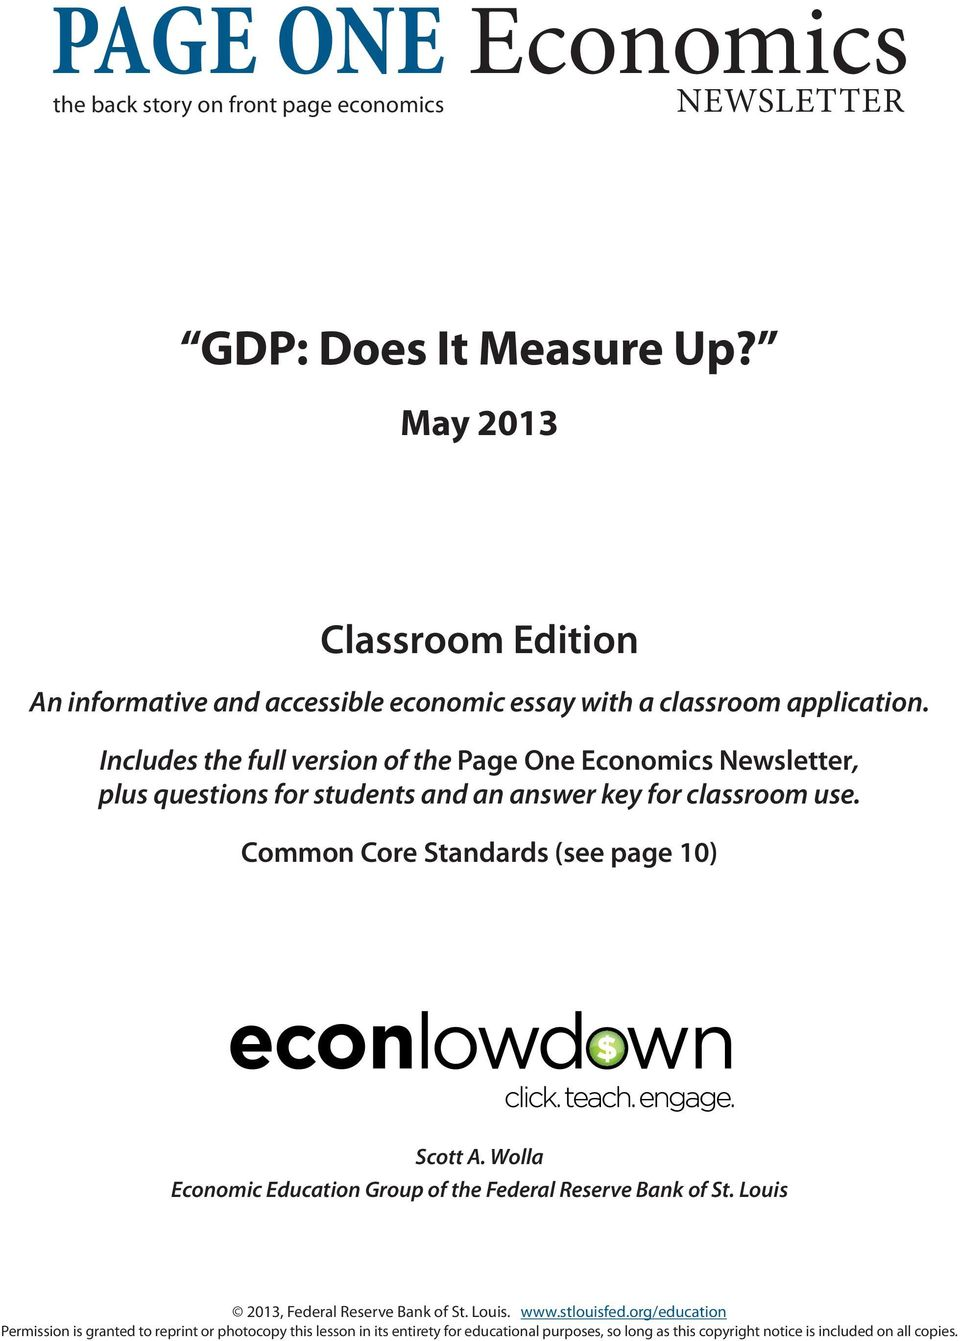 Includes the full version of the Page One Economics Newsletter, plus questions for students and an answer key for classroom use.